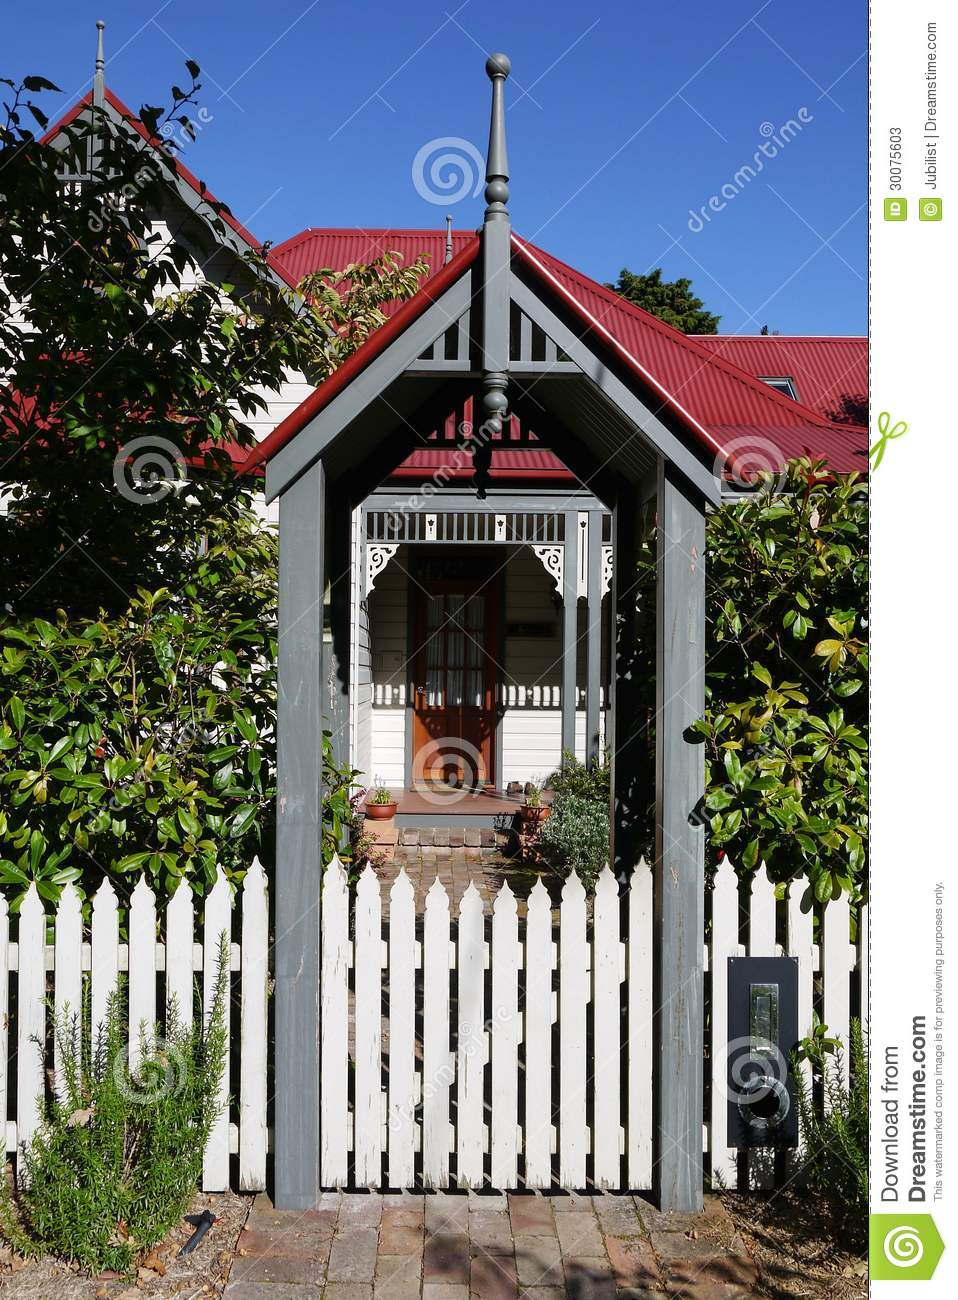 Australia: Classic Villa Home Entry Stock Photos - Image: 30075603